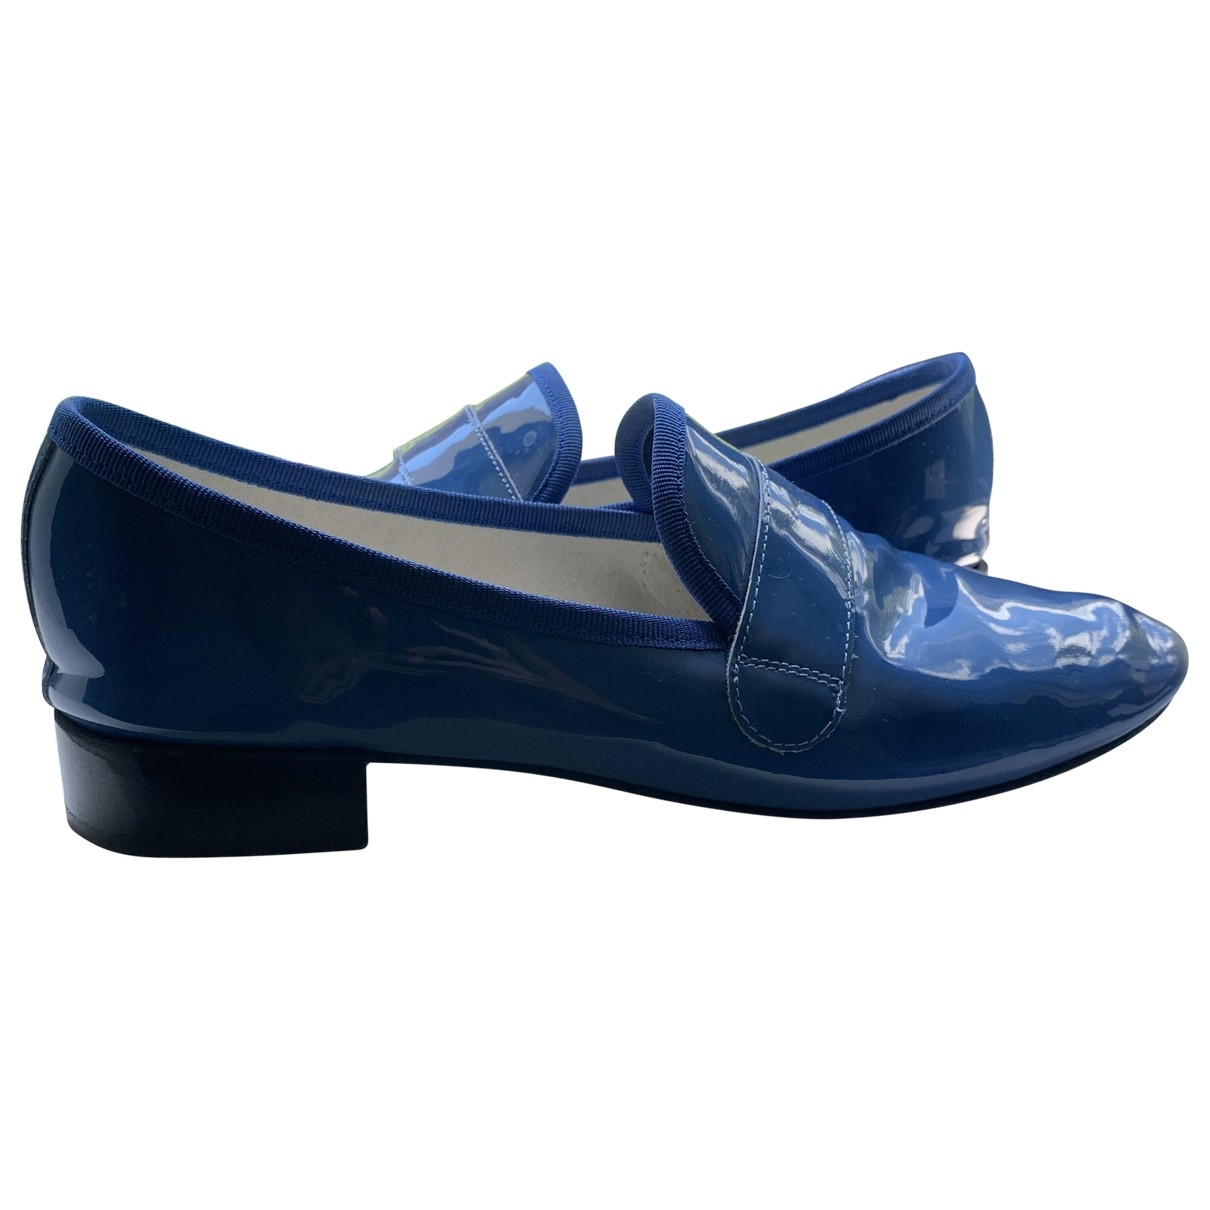 Repetto \N Blue Patent leather Flats for Women 41 EU